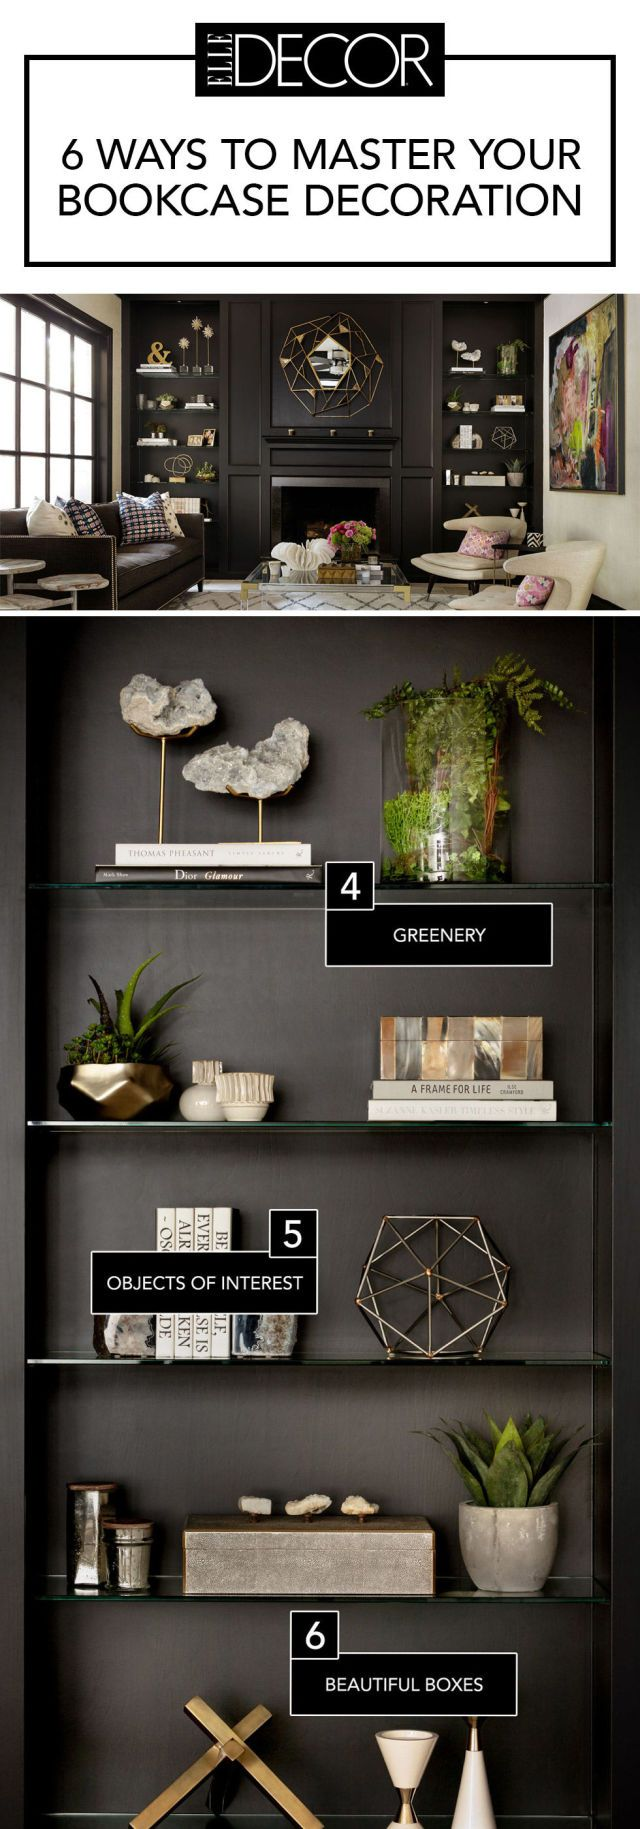 decorative shelves for living room. 6 Secrets To A Perfectly Styled Bookcase  Black Living RoomsLiving Room Wall ShelvesShelf Ideas For Best 25 Decorative shelves ideas on Pinterest Floating shelf